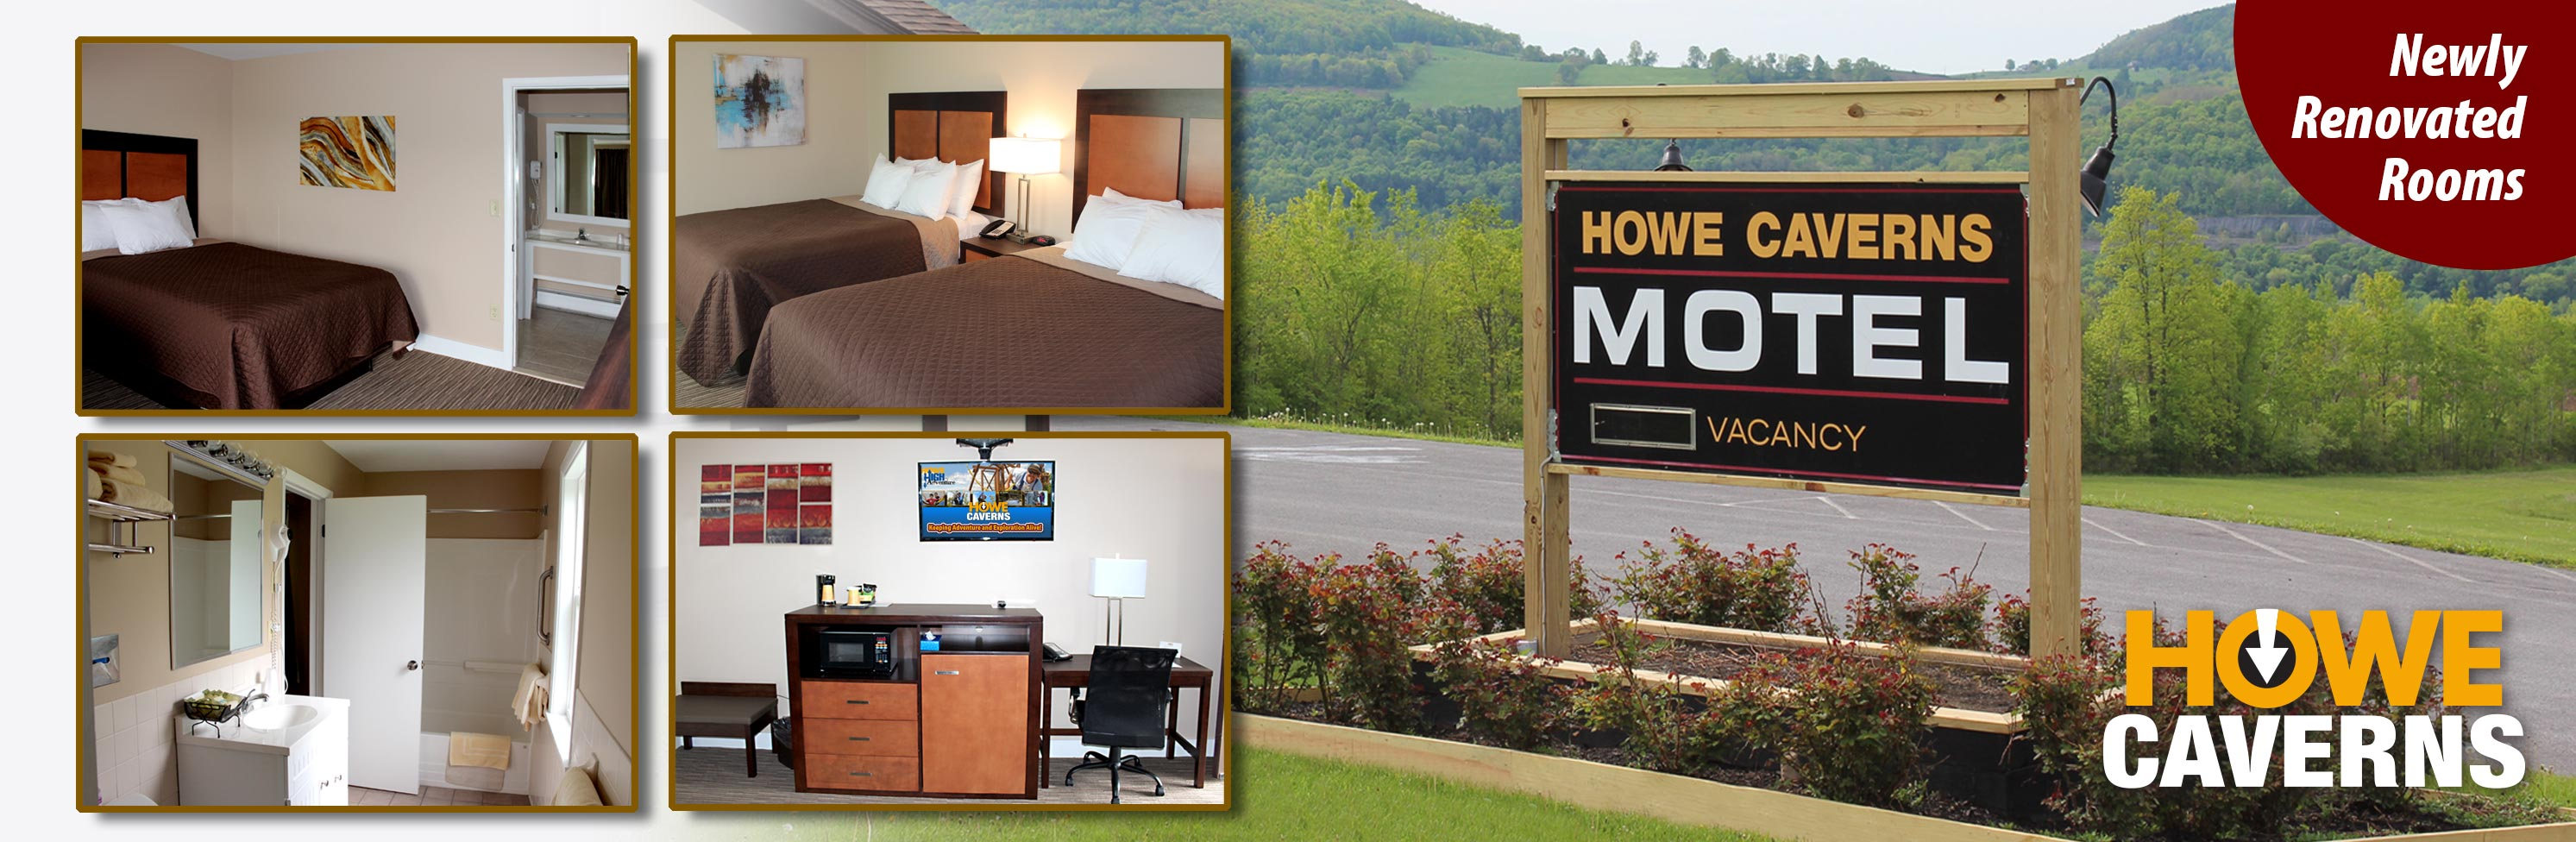 Howe Caverns Motel Located